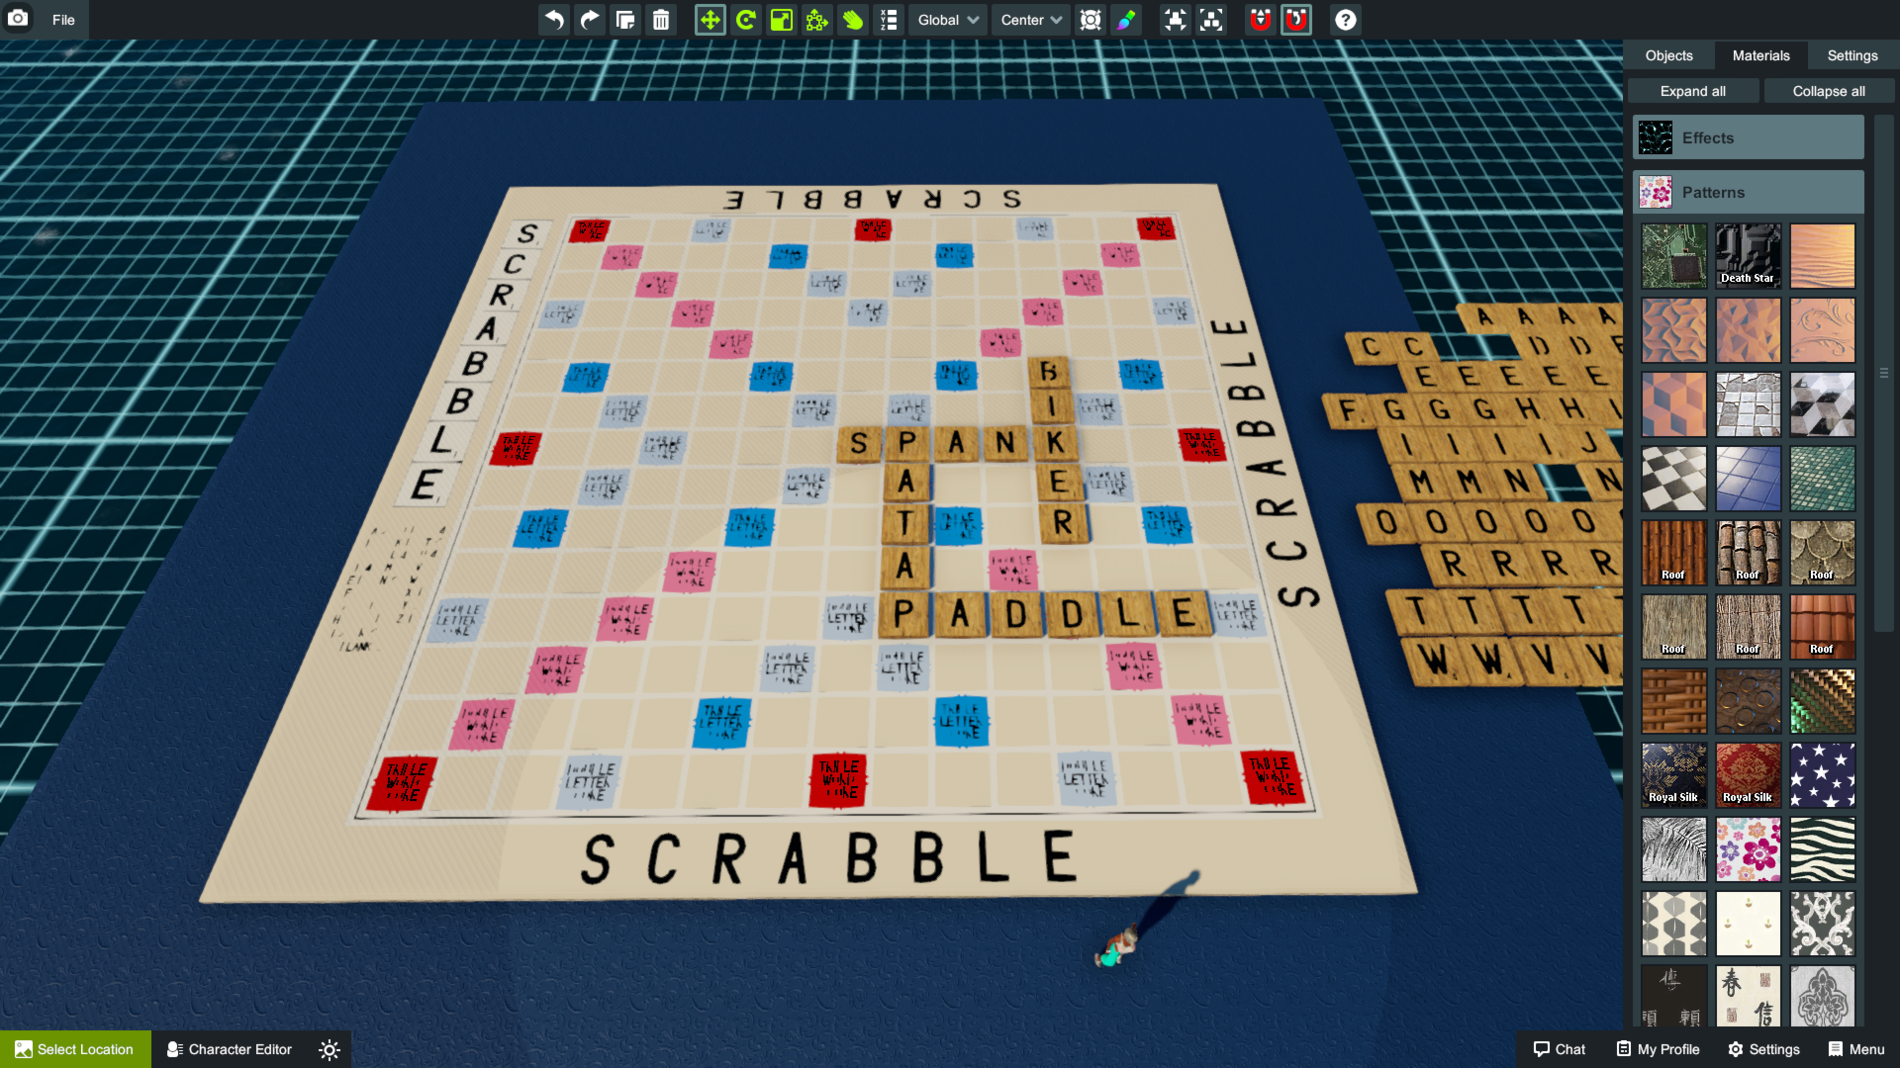 scrabble board.png